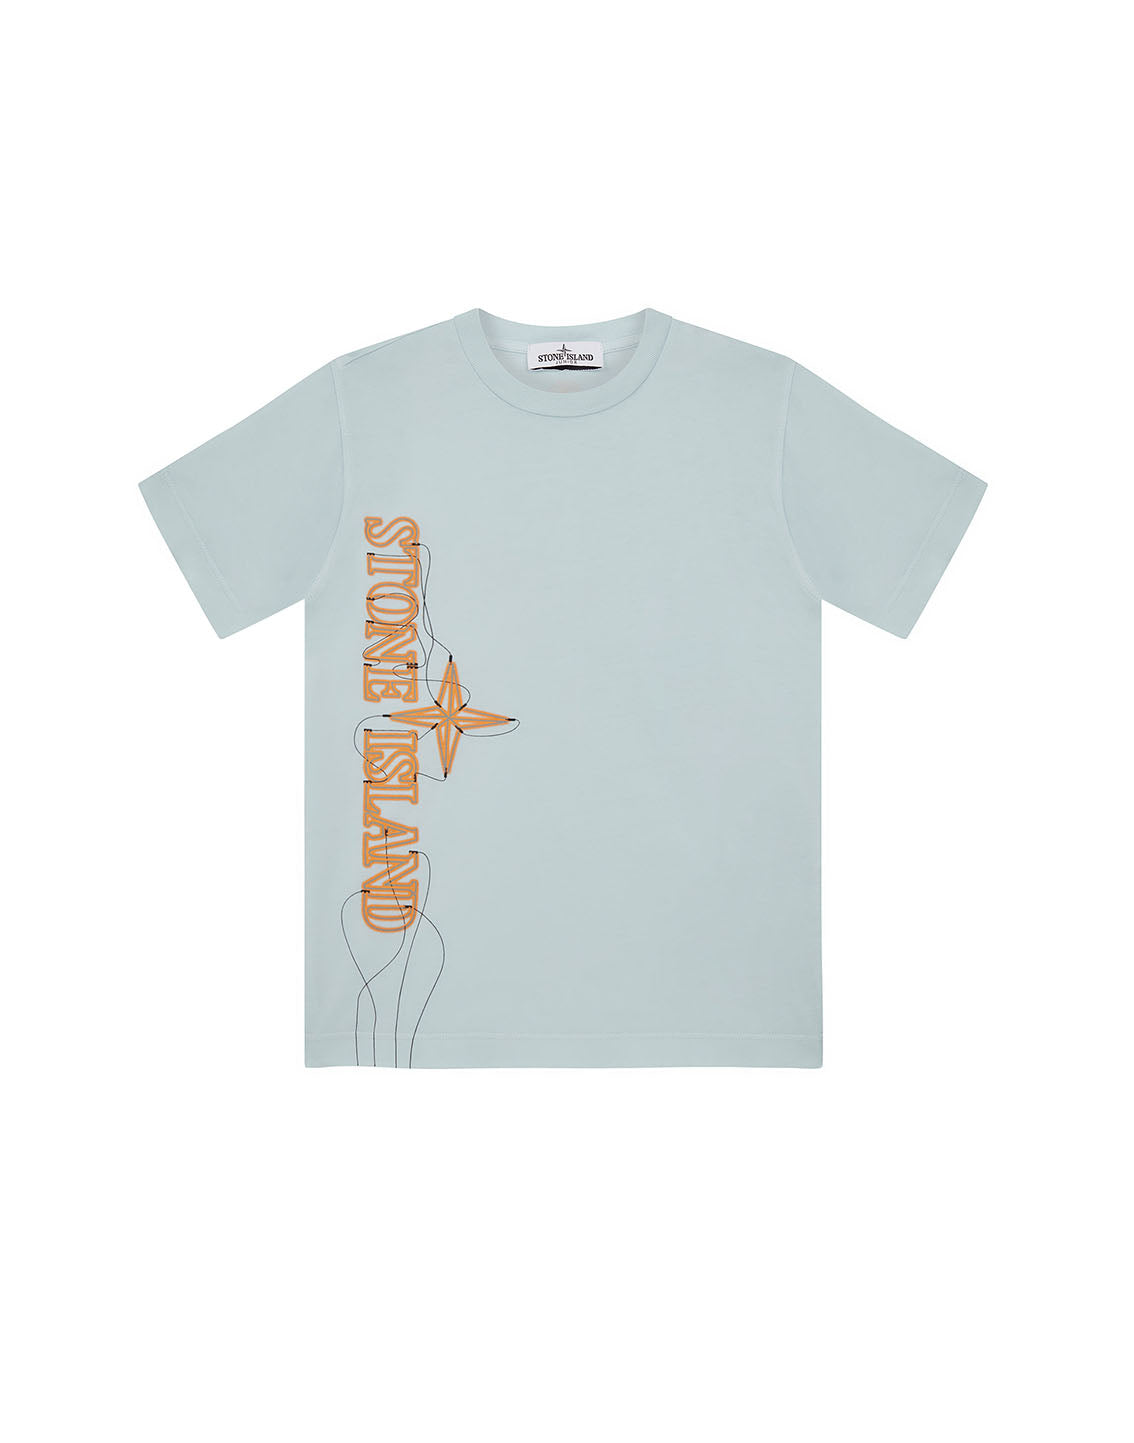 21059 'NEON LIGHTS TWO' PRINT T-Shirt in Sky Blue